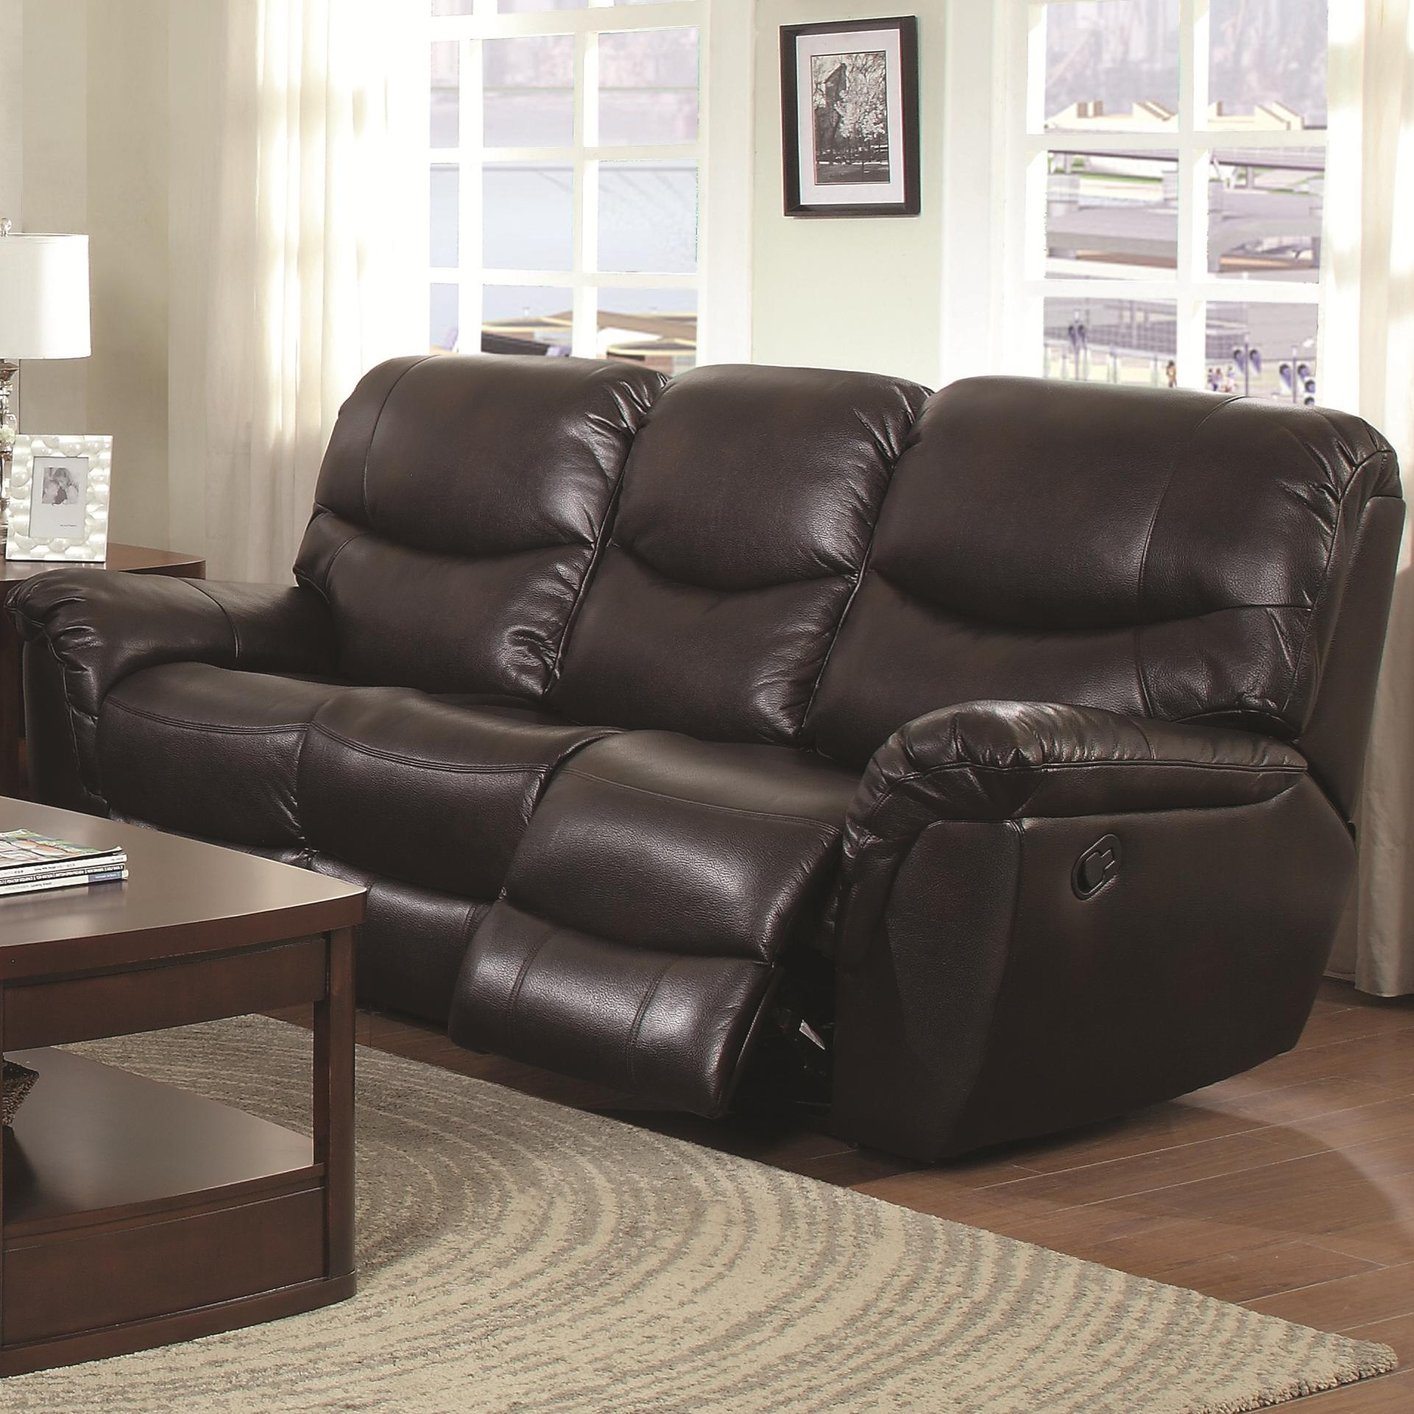 100 leather reclining sofa faux leather contemporary reclining sofa rh desarrollo forgent cl